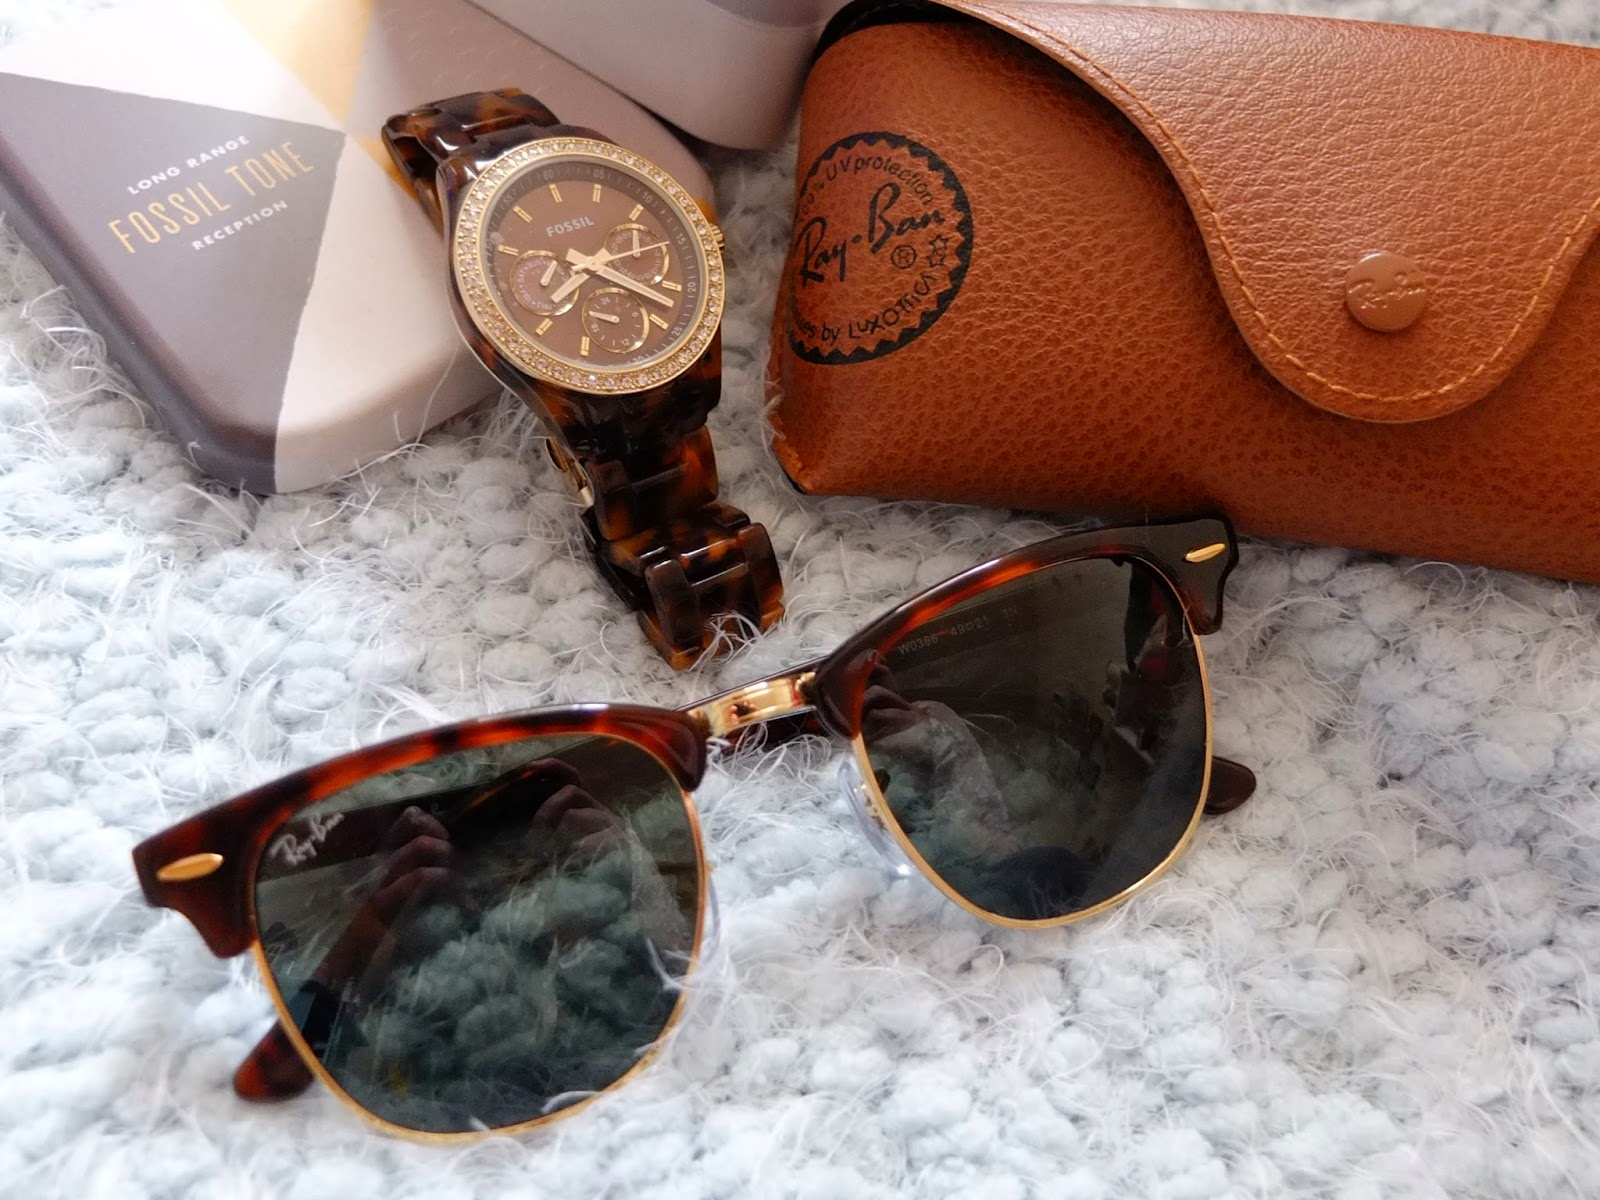 Tortoiseshell accessories featuring Fossil Watch and RayBan Clubmaster sunglasses on Hello Terri Lowe UK blog.